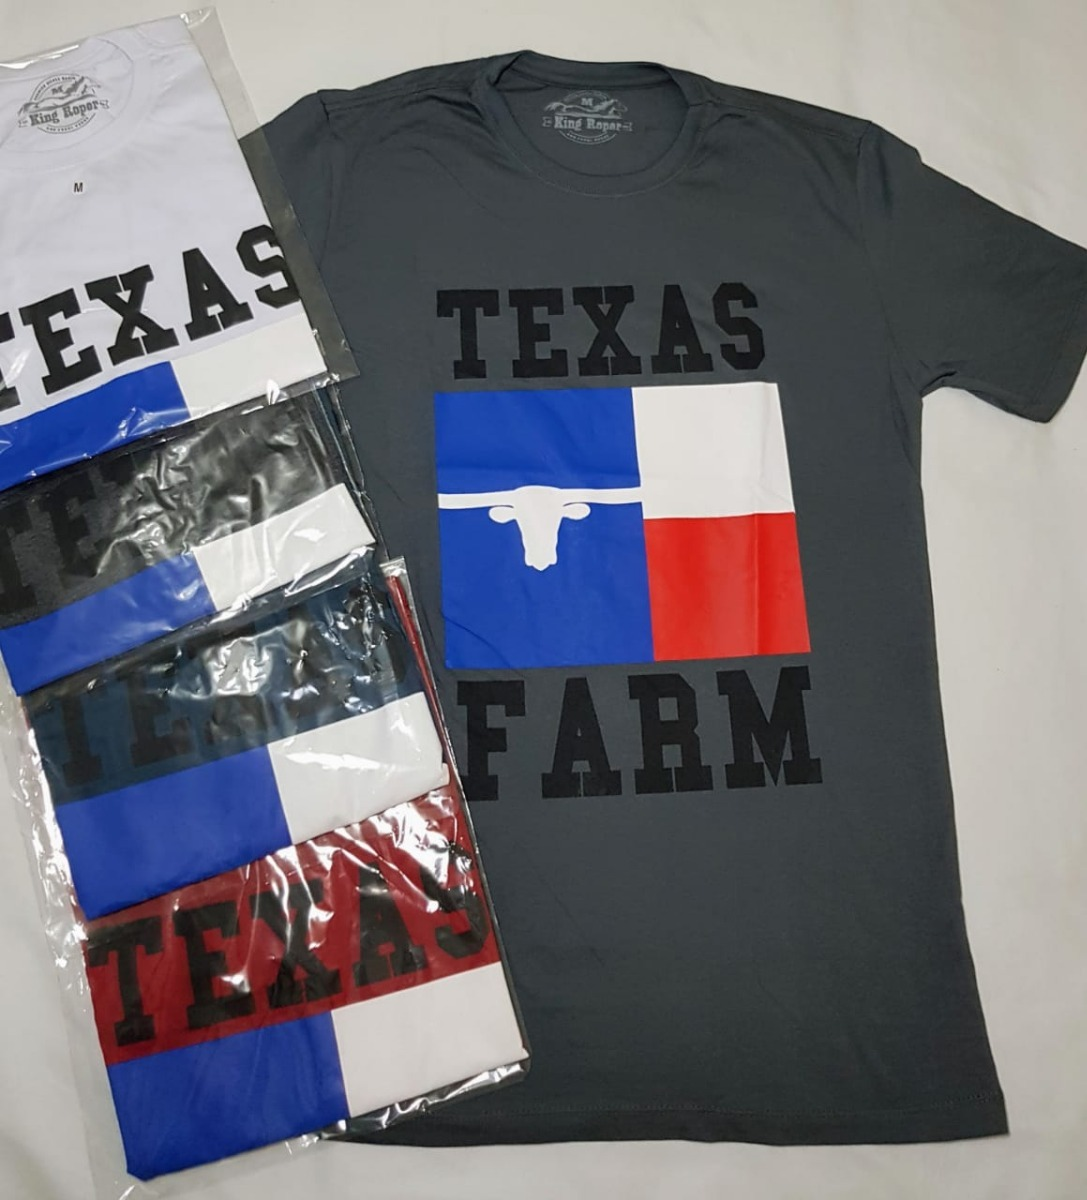 Camiseta texas farms king ranch farms country sertanejo carregando zoom jpg  1087x1200 King ranch farms d450394f1b5